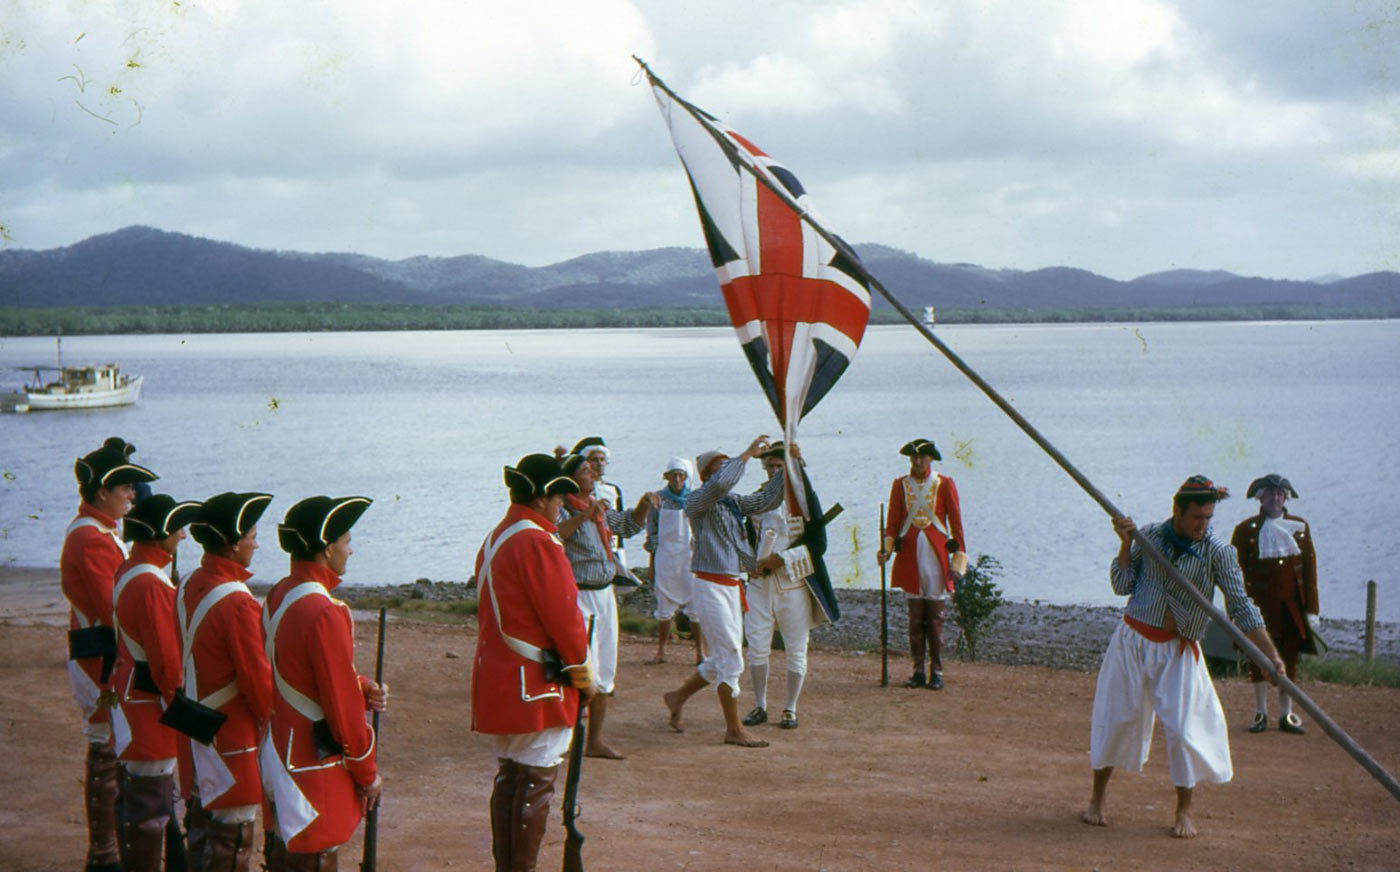 Colour photo of men in costume beside a large river and raising the British flag. - click to view larger image